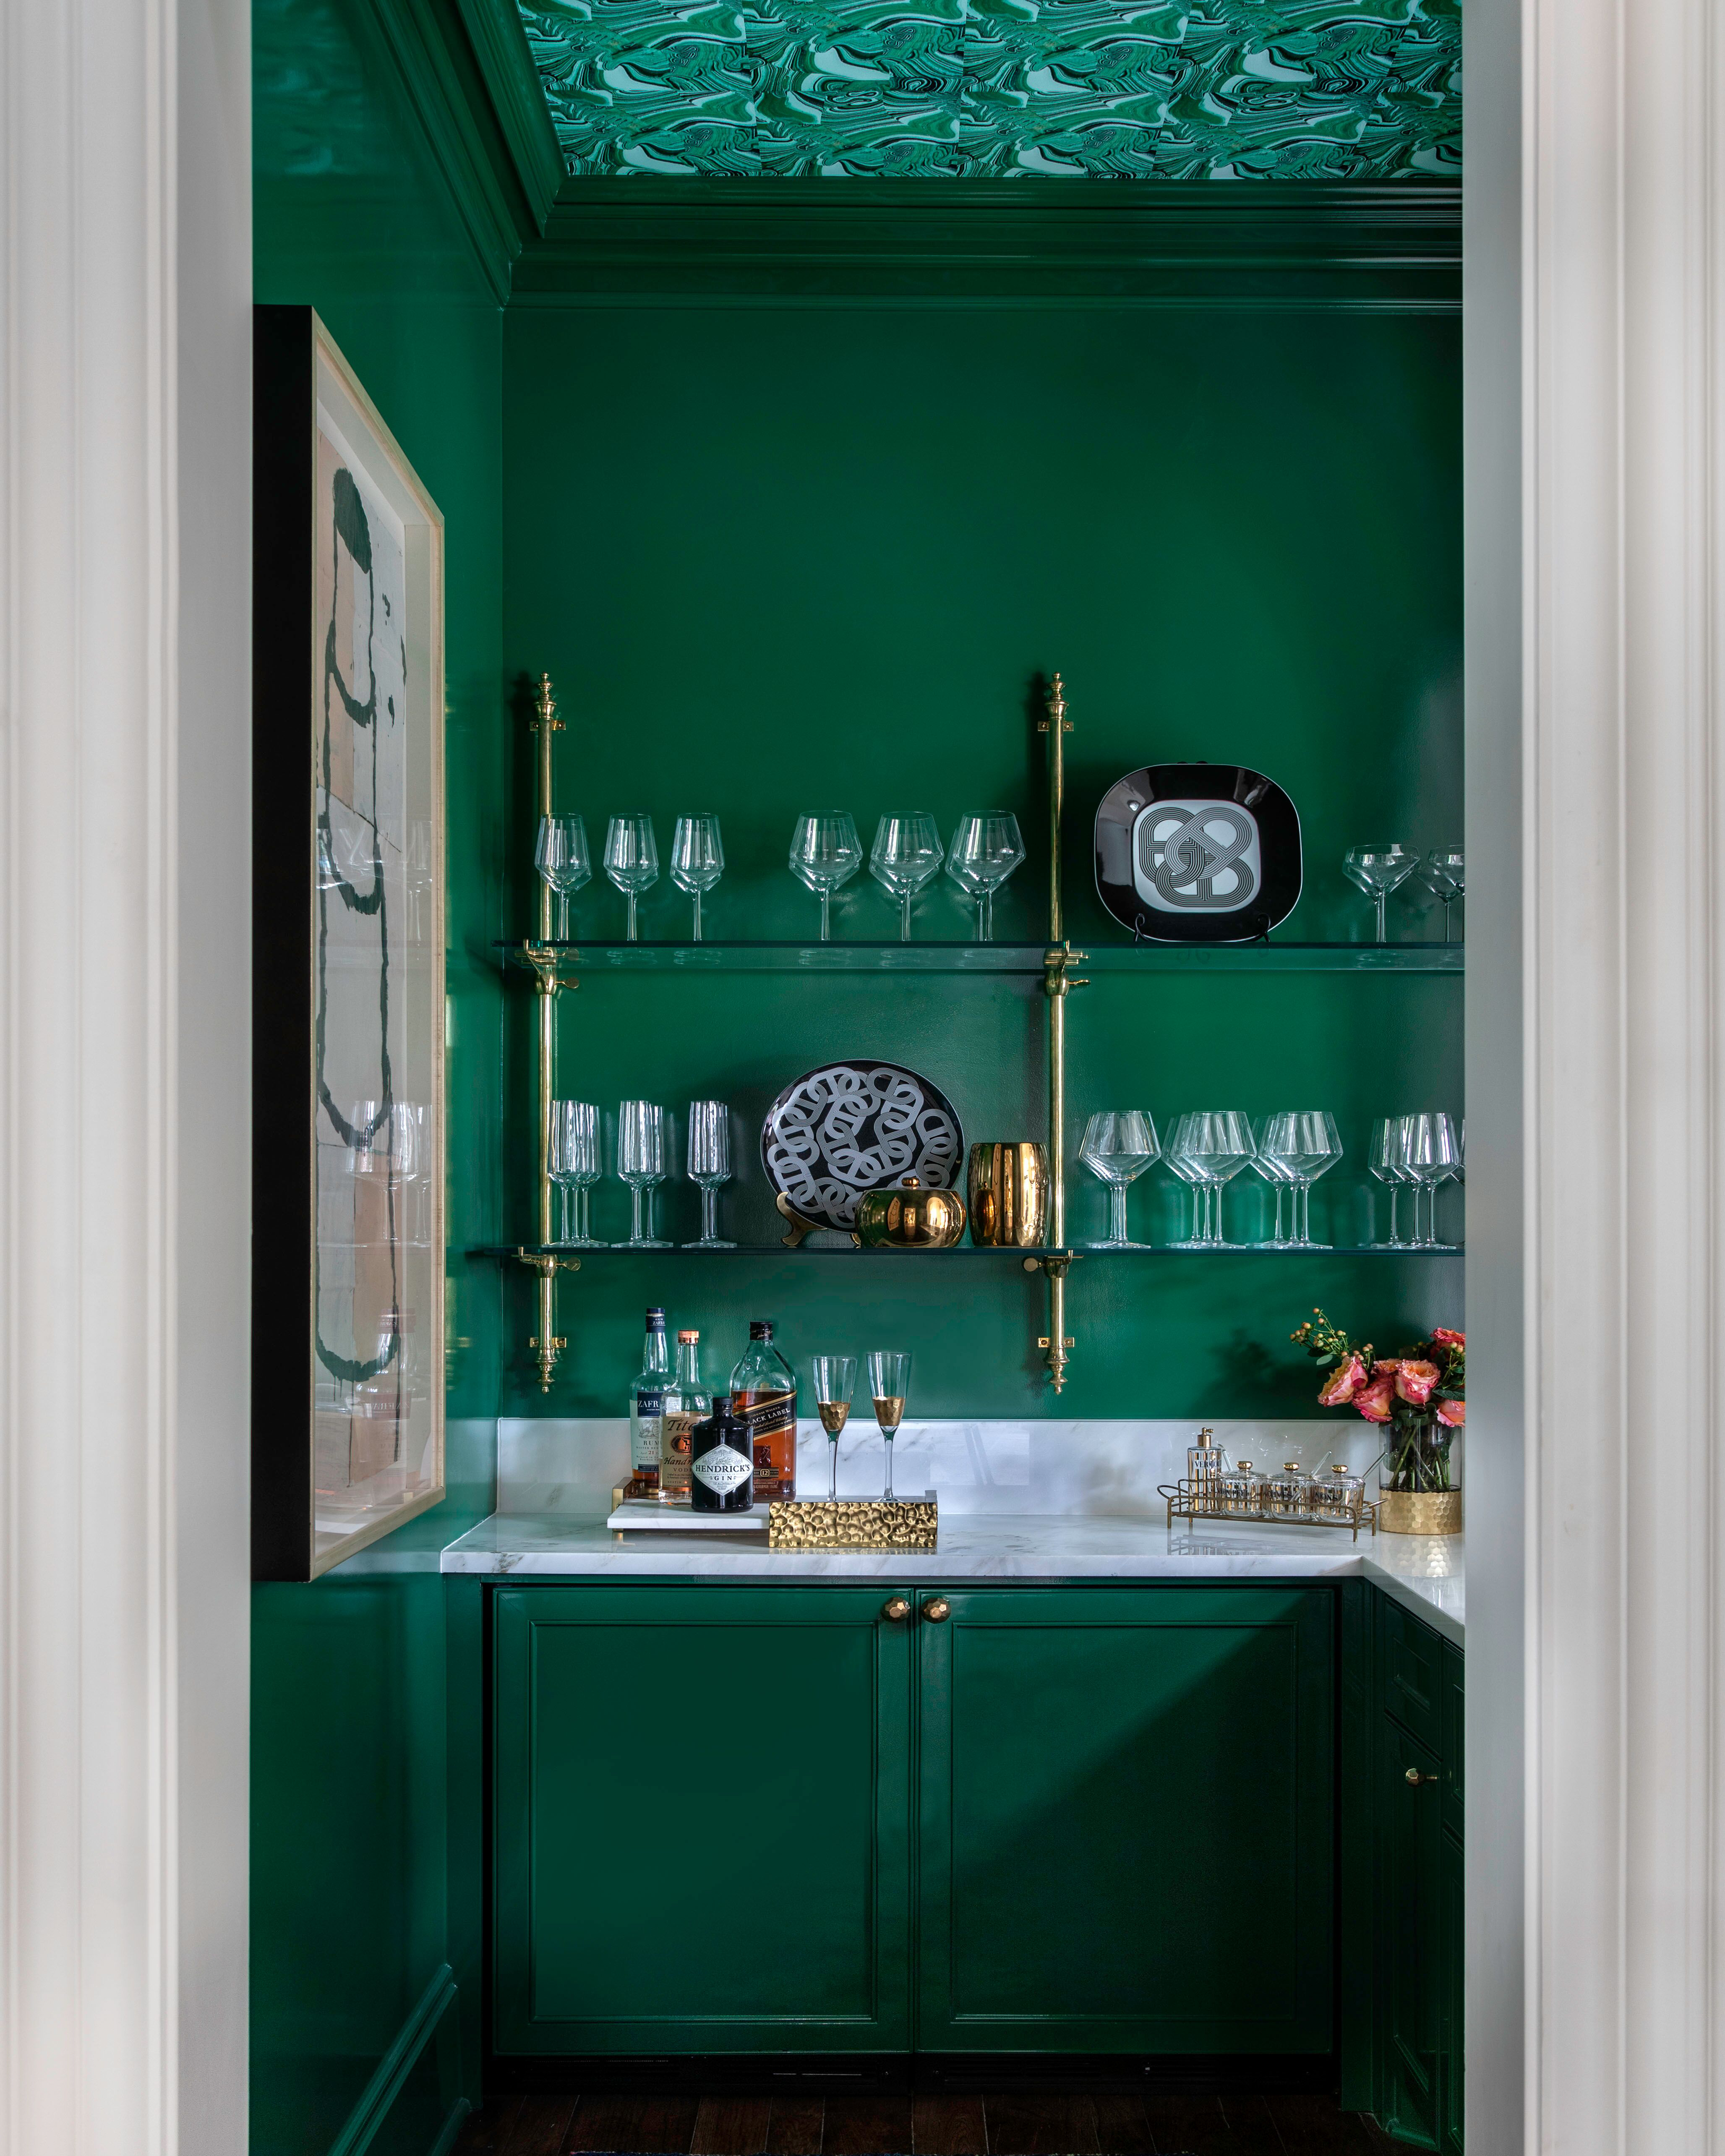 """Use Unexpected Accents. """"A dark, sexy color palette, brass or lacquered metal accents, an unexpected wallpaper, antique mirrors, and an interesting countertop all play into the way I begin the design,"""" says NicoleZarr.   The lacquered green walls, cabinets, and brass hardware in this space blend with the color scheme of the home, but also give the spaceits own personality."""